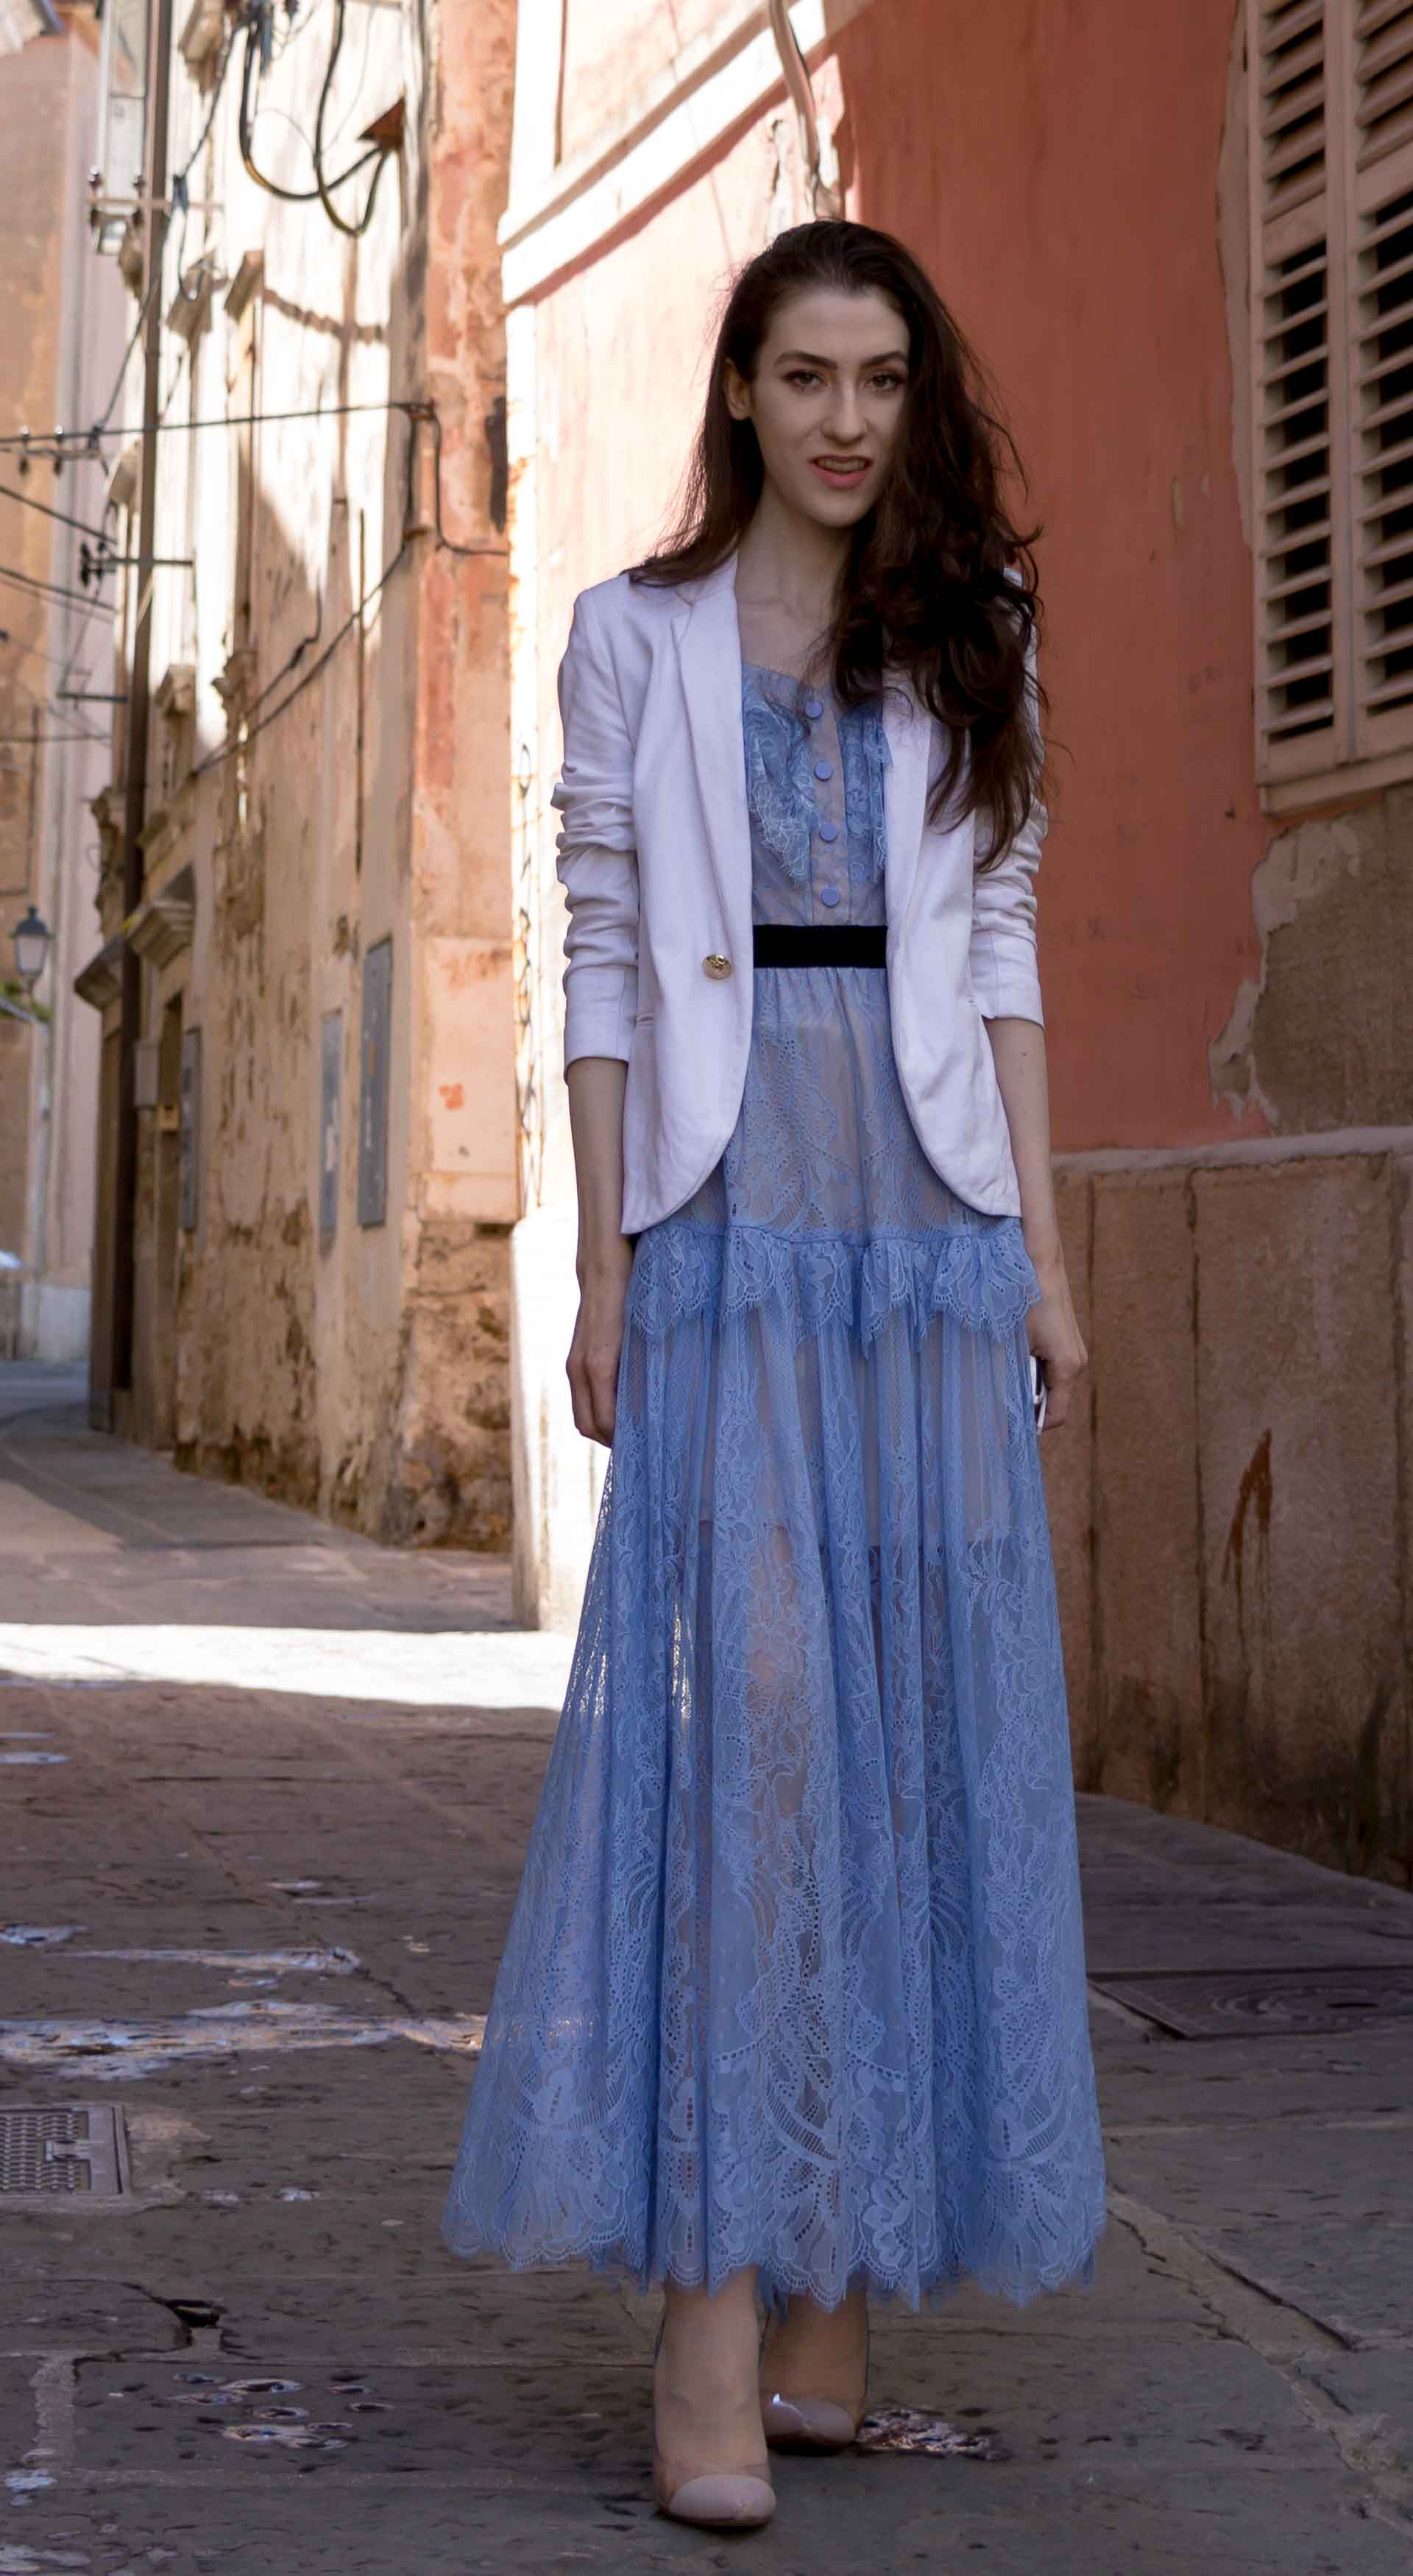 Veronika Lipar Fashion Blogger of Brunette from Wall Street dressed in Self-Portrait blue lace midi dress, white single button blazer, blush Gianvito Rossi plexi pumps, white shoulder bag, Lespecs white cat eye sunglasses while standing hidden alley in Italian town